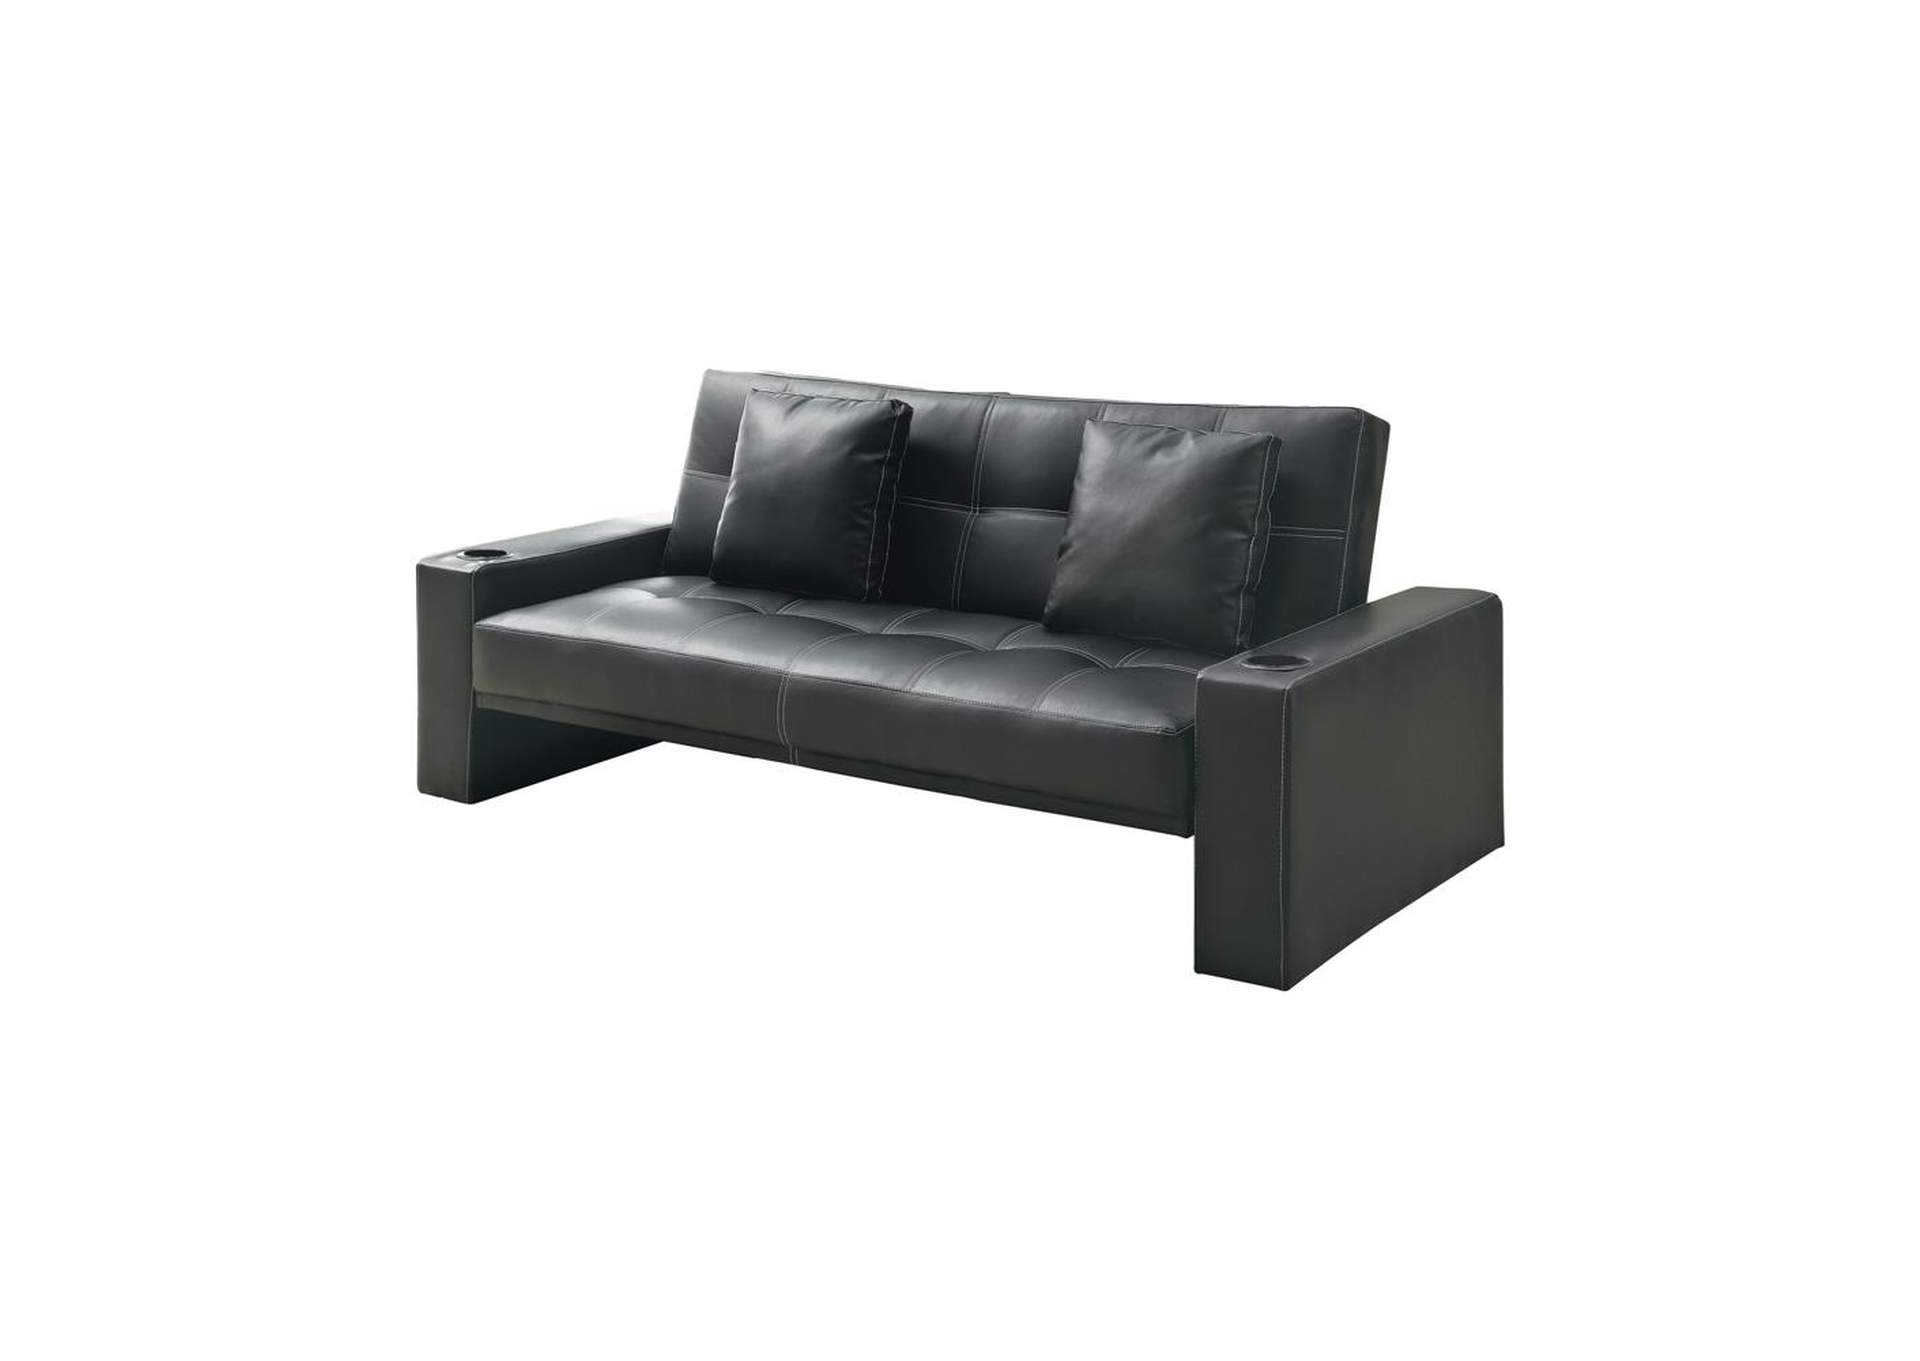 Onyx Contemporary Black Sofa Bed,Coaster Furniture